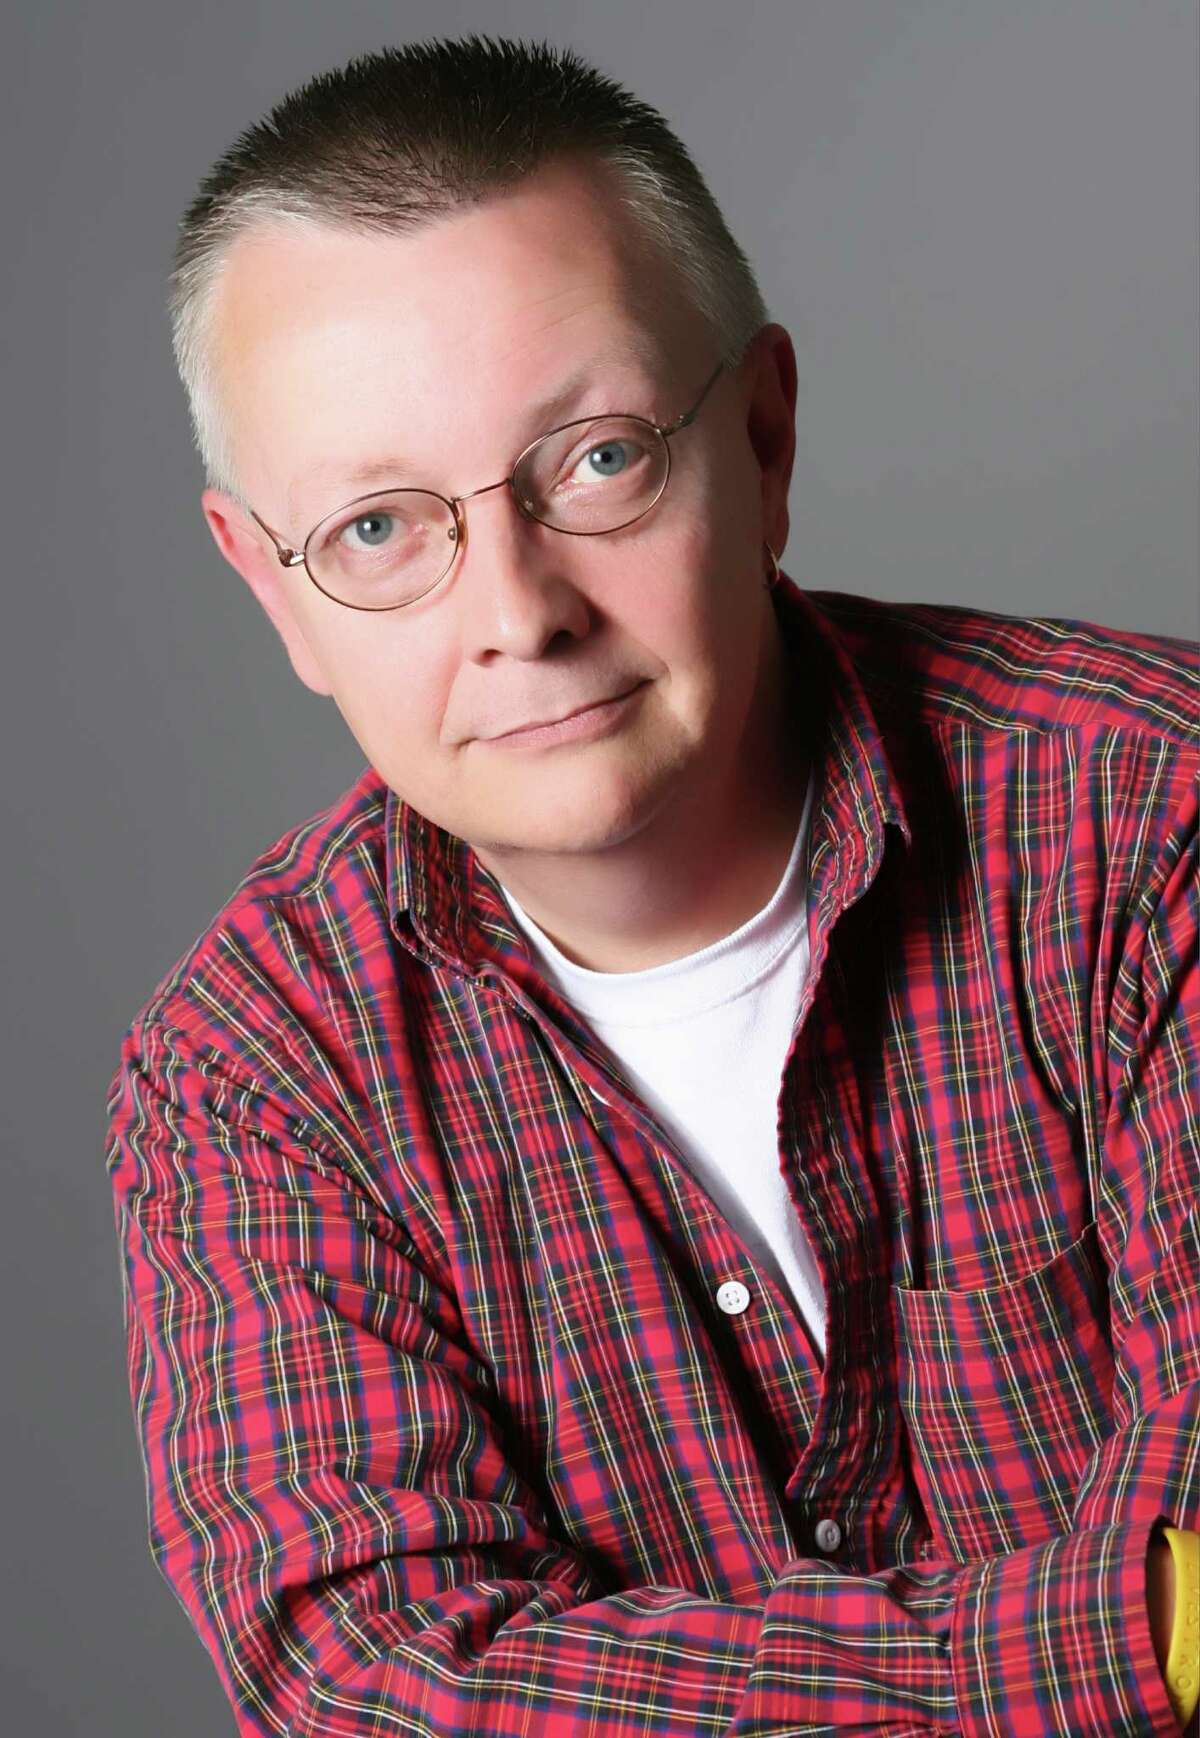 An upstate New York native, Chip Coffey is an internationally acclaimed psychic, medium and paranormal investigator, speaker and writer. He is known for hosting